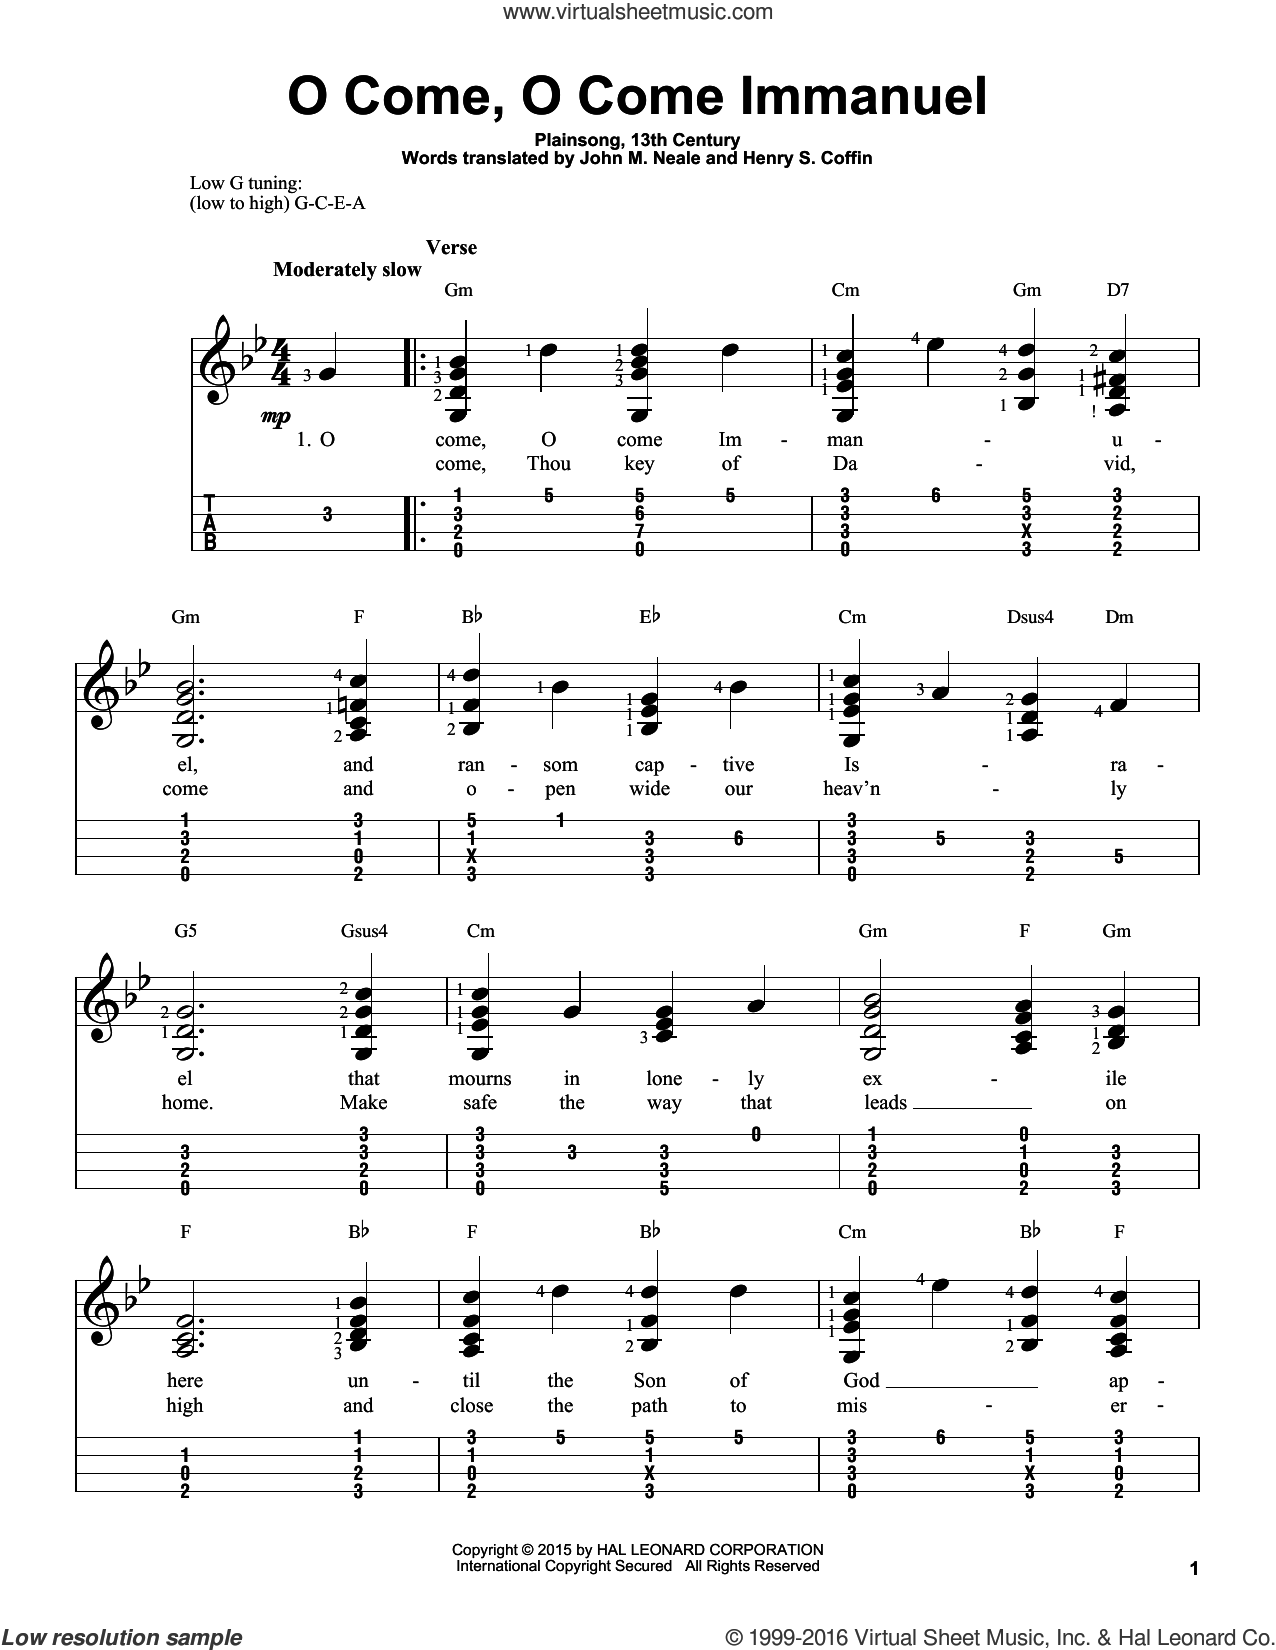 O Come, O Come Immanuel sheet music for ukulele (easy tablature) (ukulele easy tab) by Plainsong, 13th Century, John Mason Neale and Henry S. Coffin (trans.), intermediate skill level